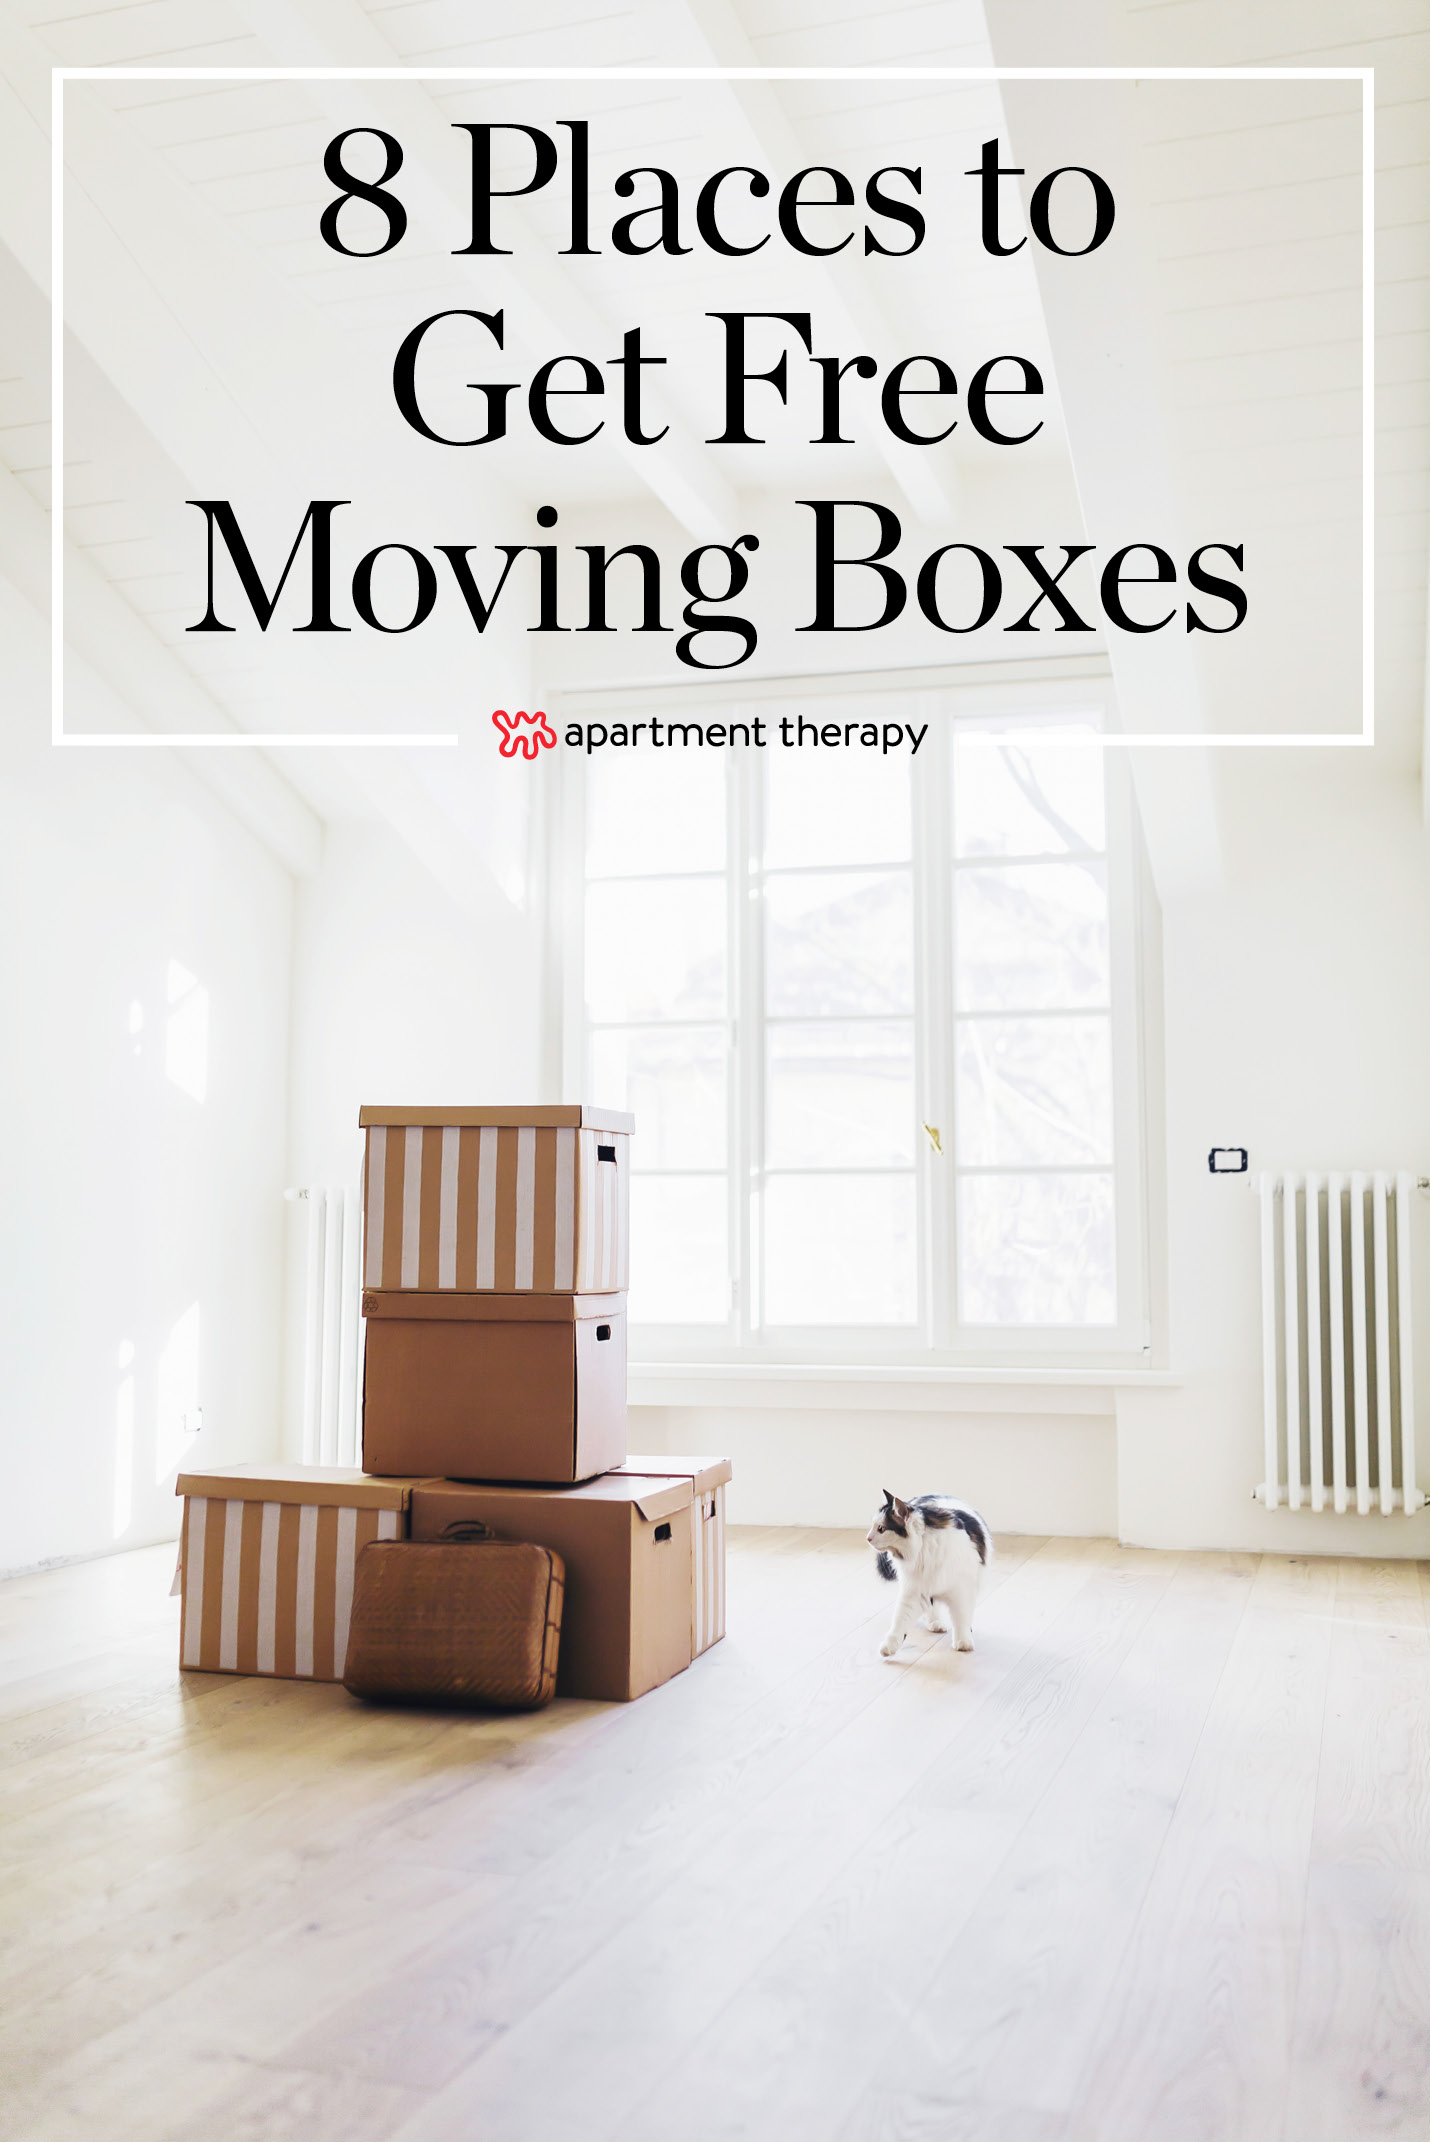 Free Cardboard Boxes Melbourne 8 Places To Get Free Moving Boxes Apartment Therapy